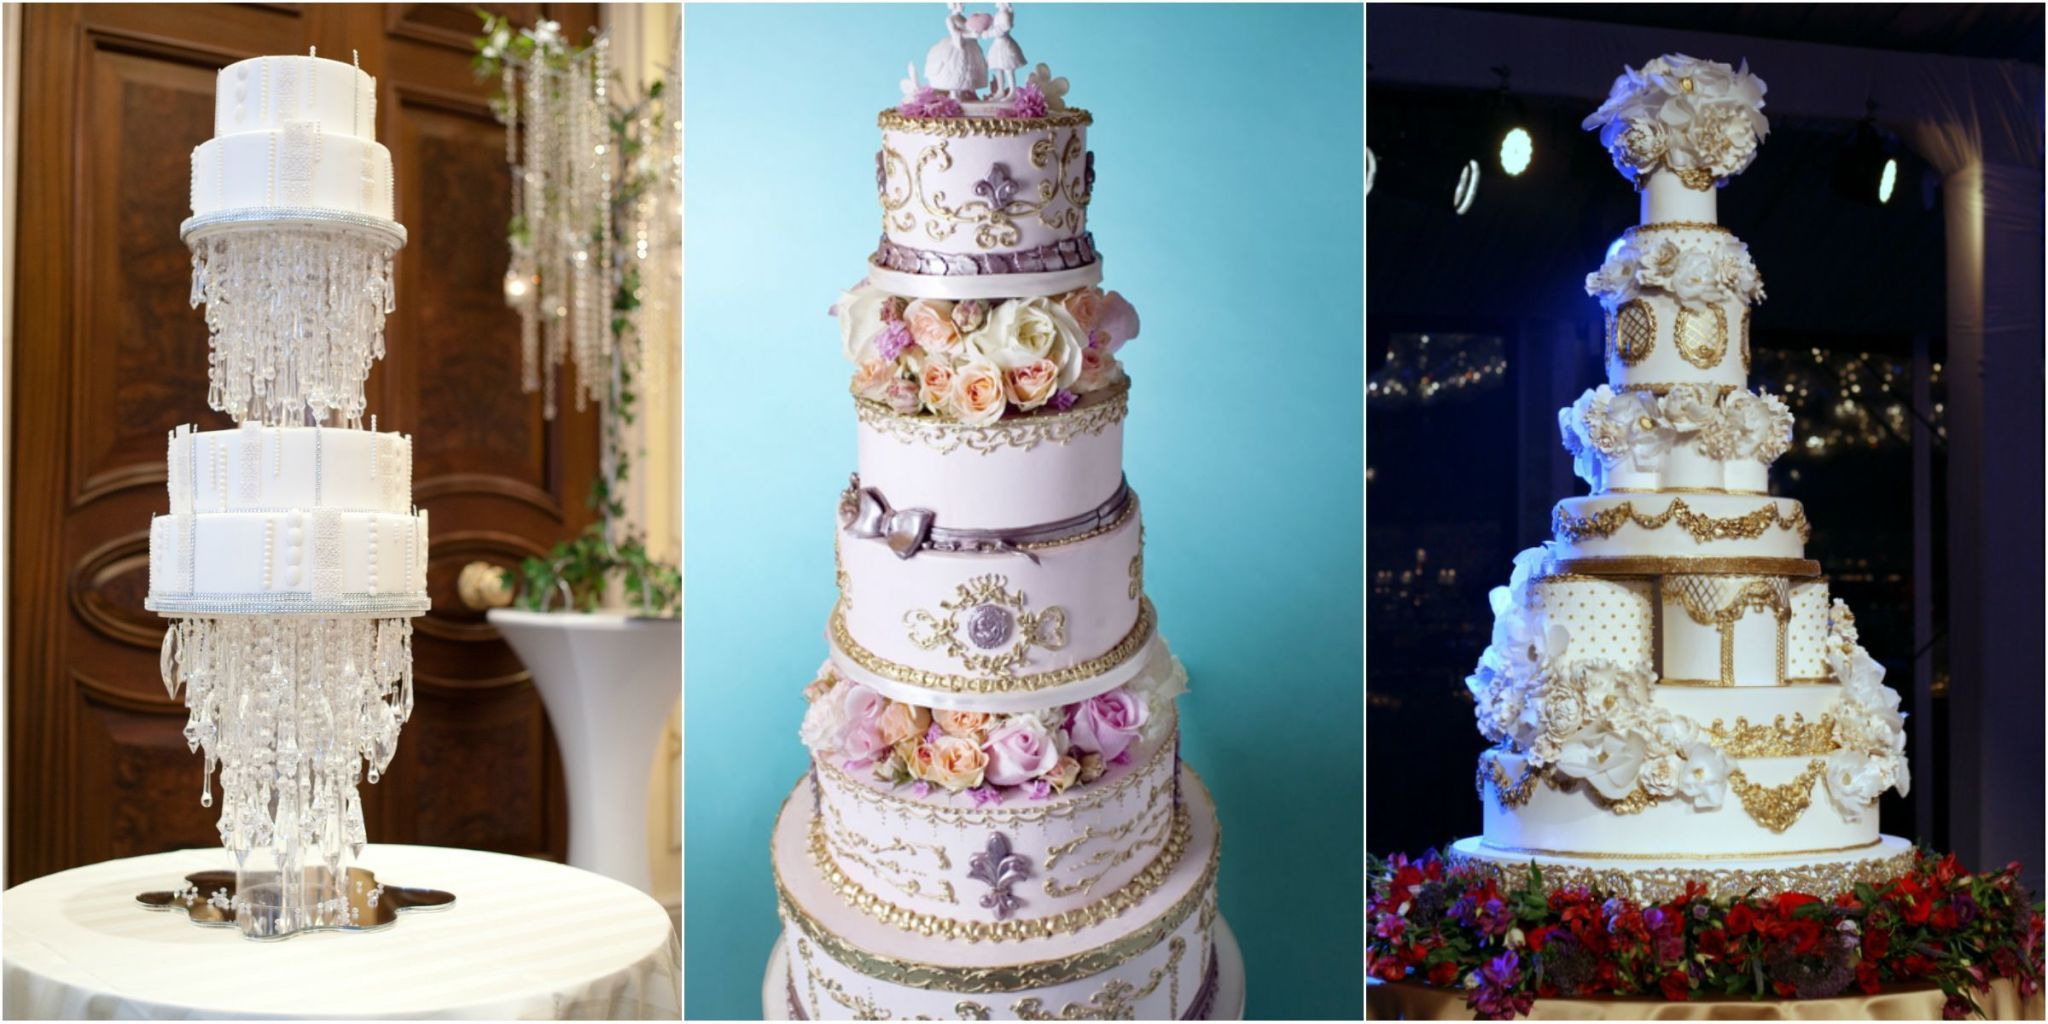 Outrageous and Crazy Wedding Cakes Pictures     Delish com These cakes see your three tiers and raise you eight